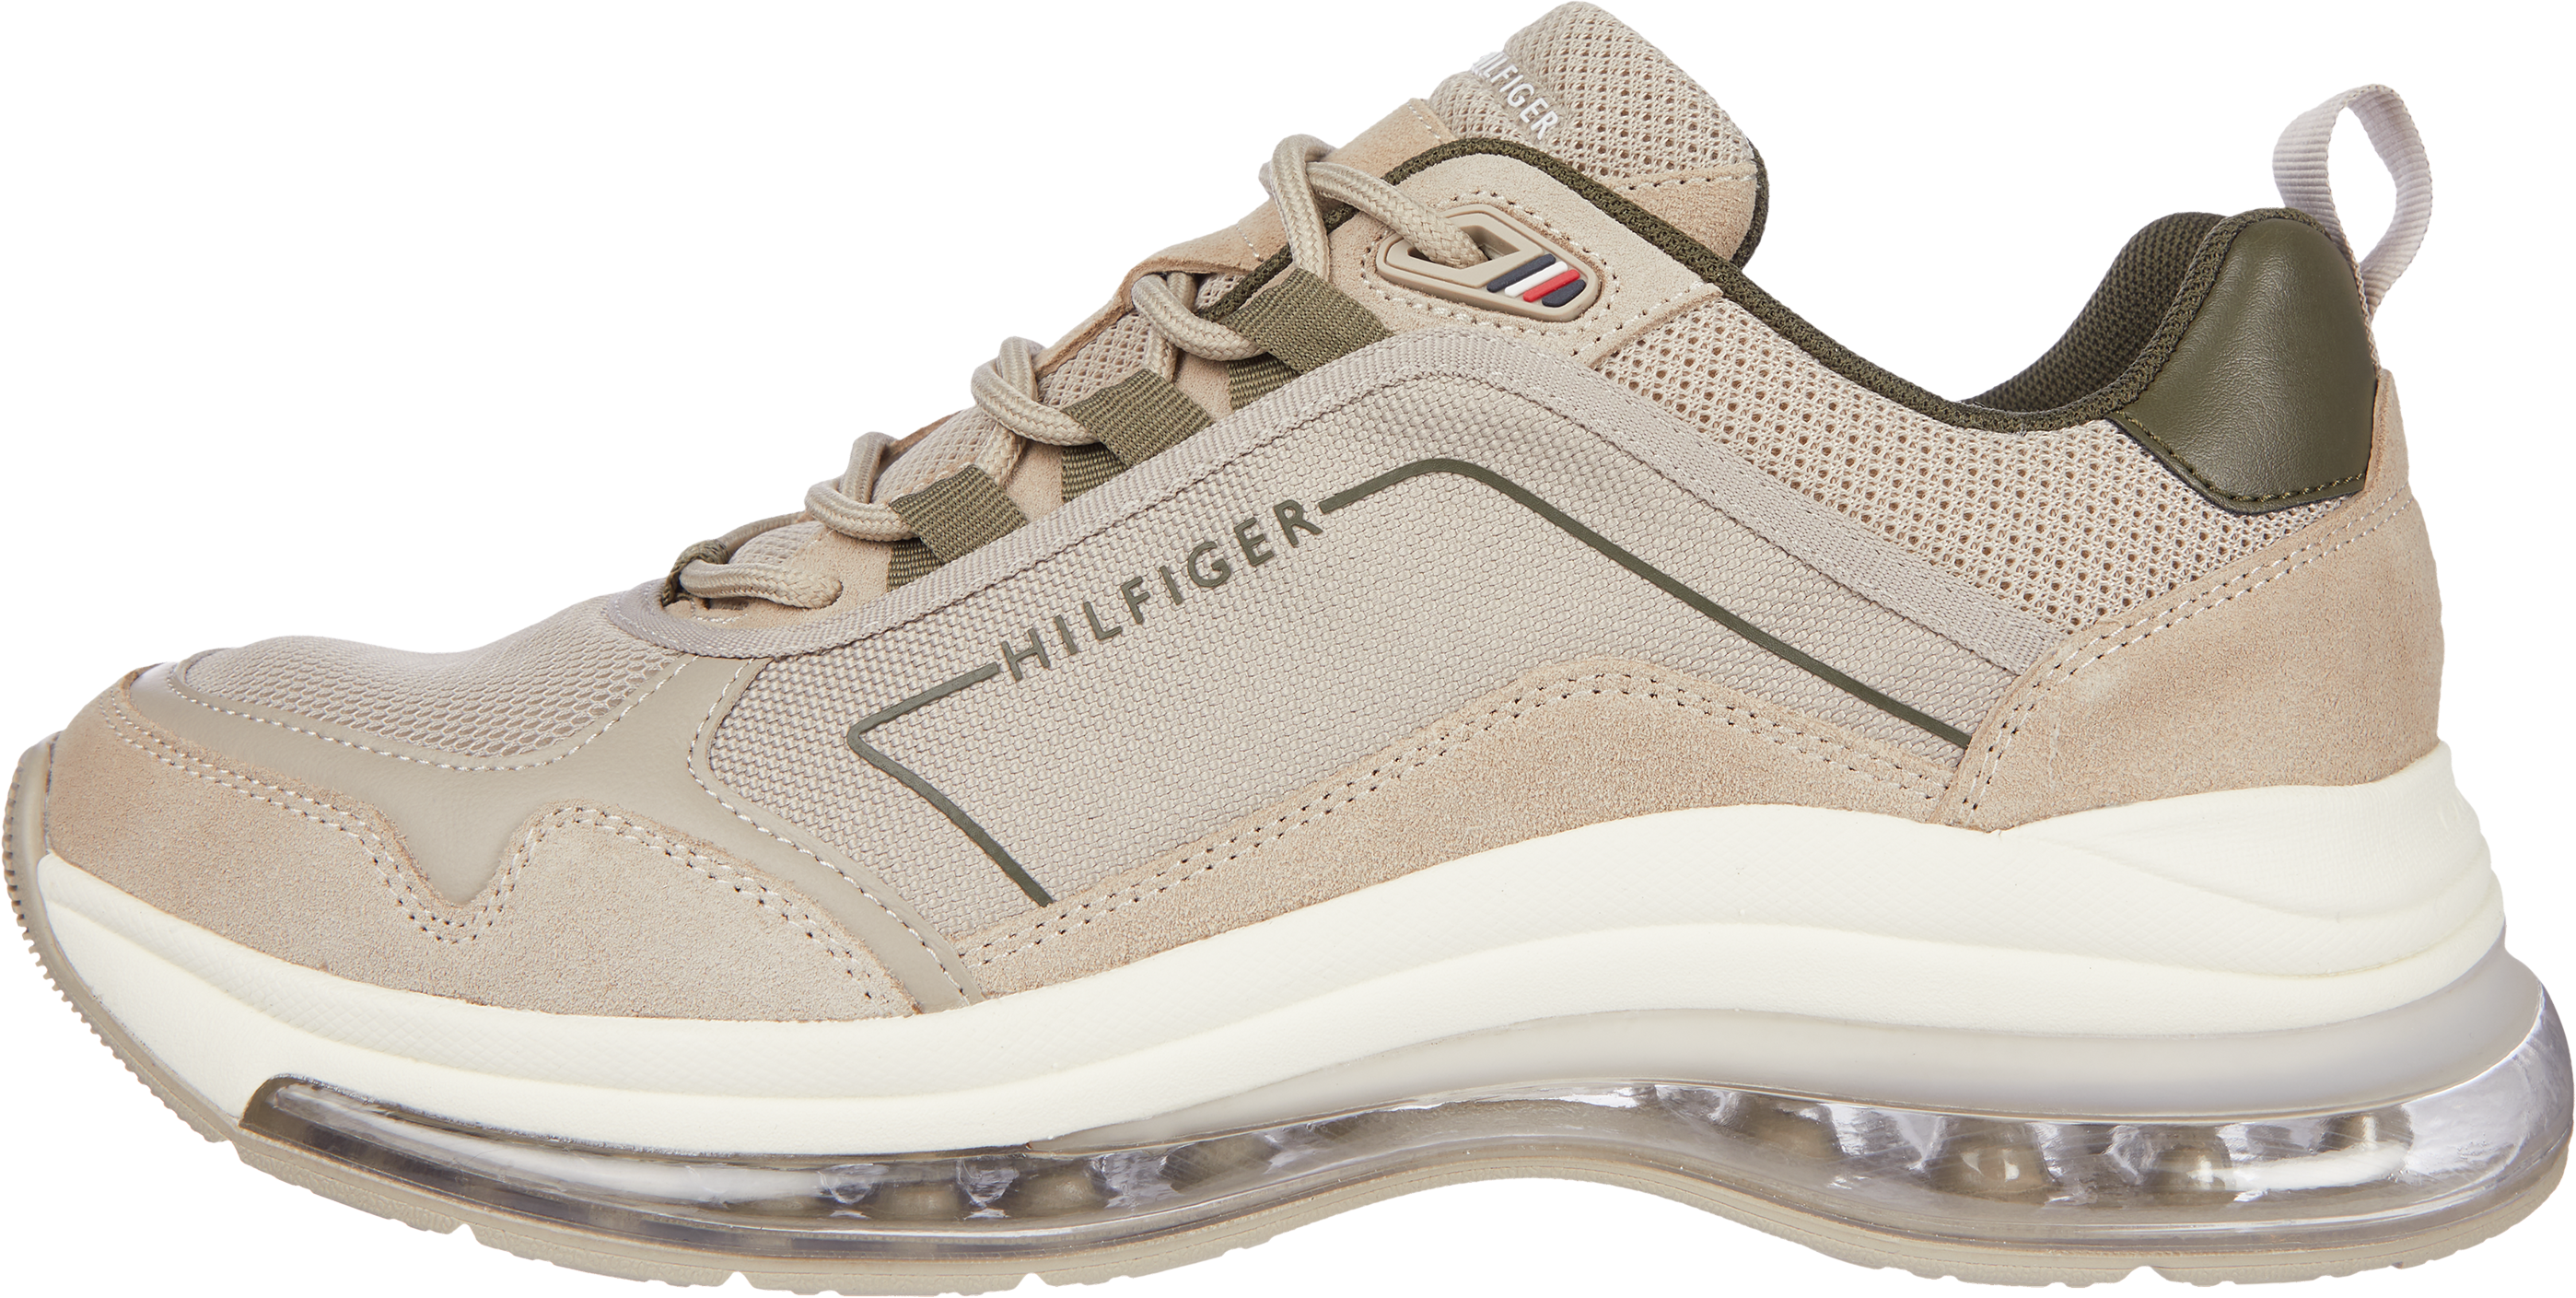 Tommy Hilfiger Air Bubble Suede sneakers, stone, 44